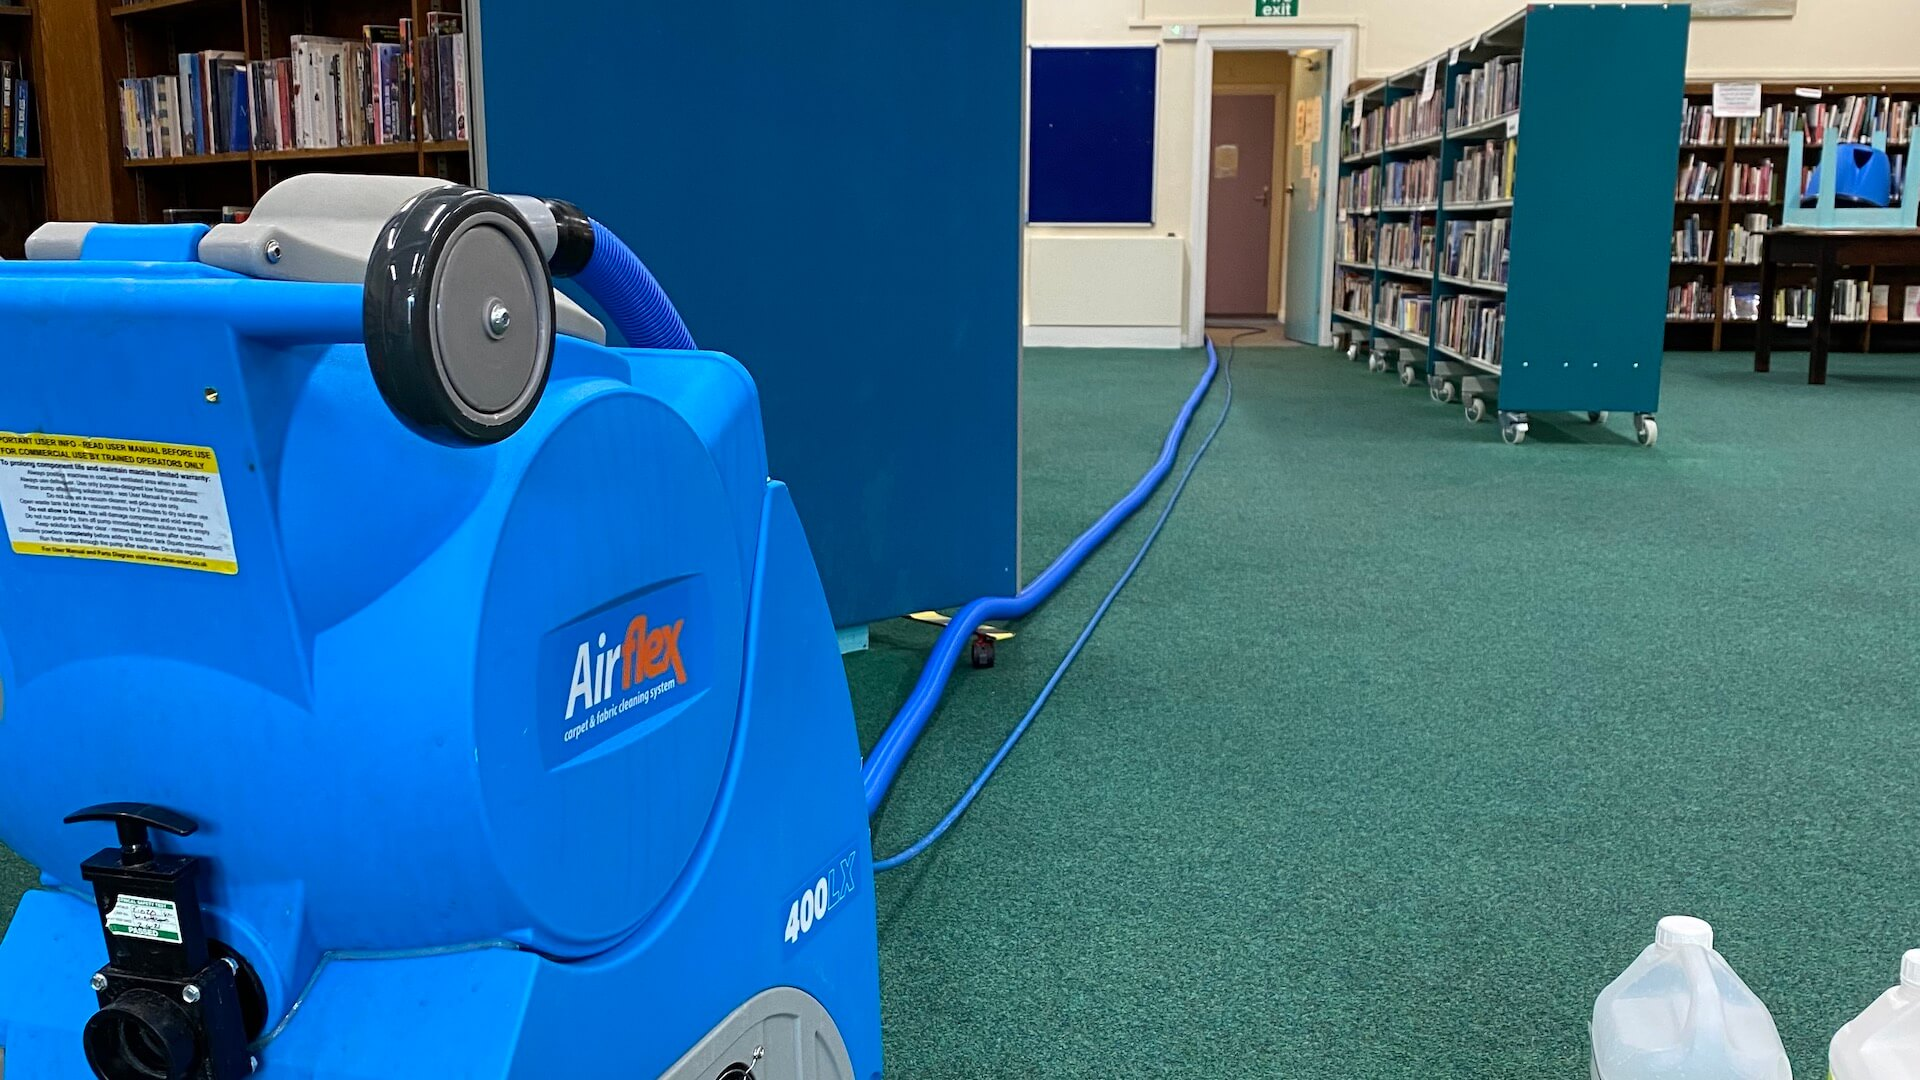 Commercial cleaning in public library